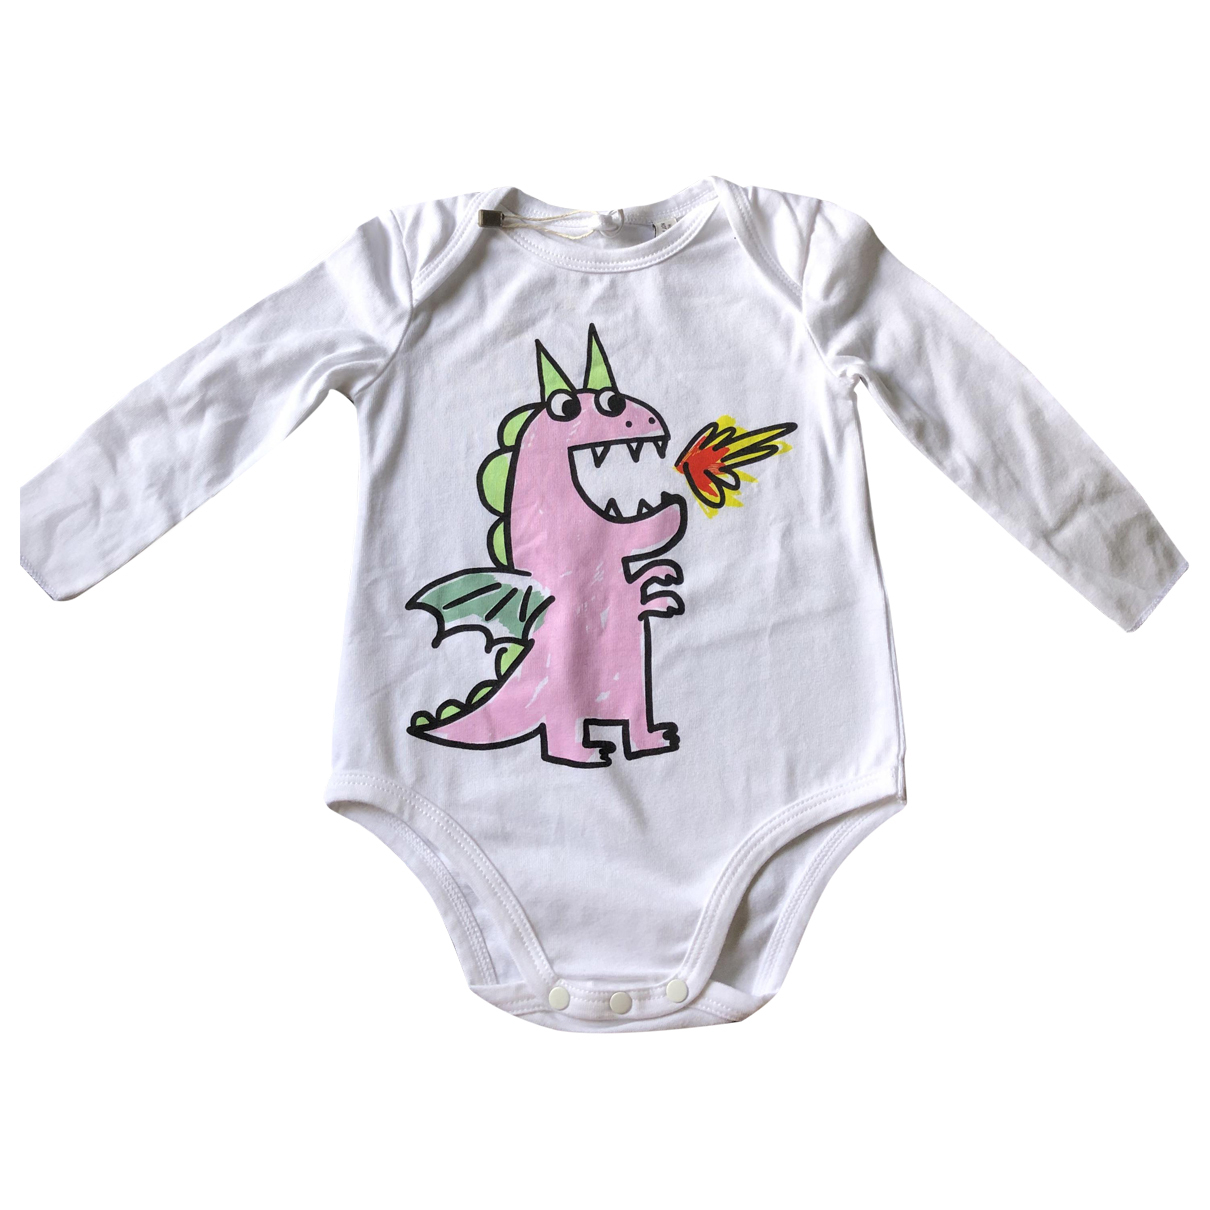 Stella Mccartney Kids \N Cotton Outfits for Kids 6 months - until 26.5 inches UK